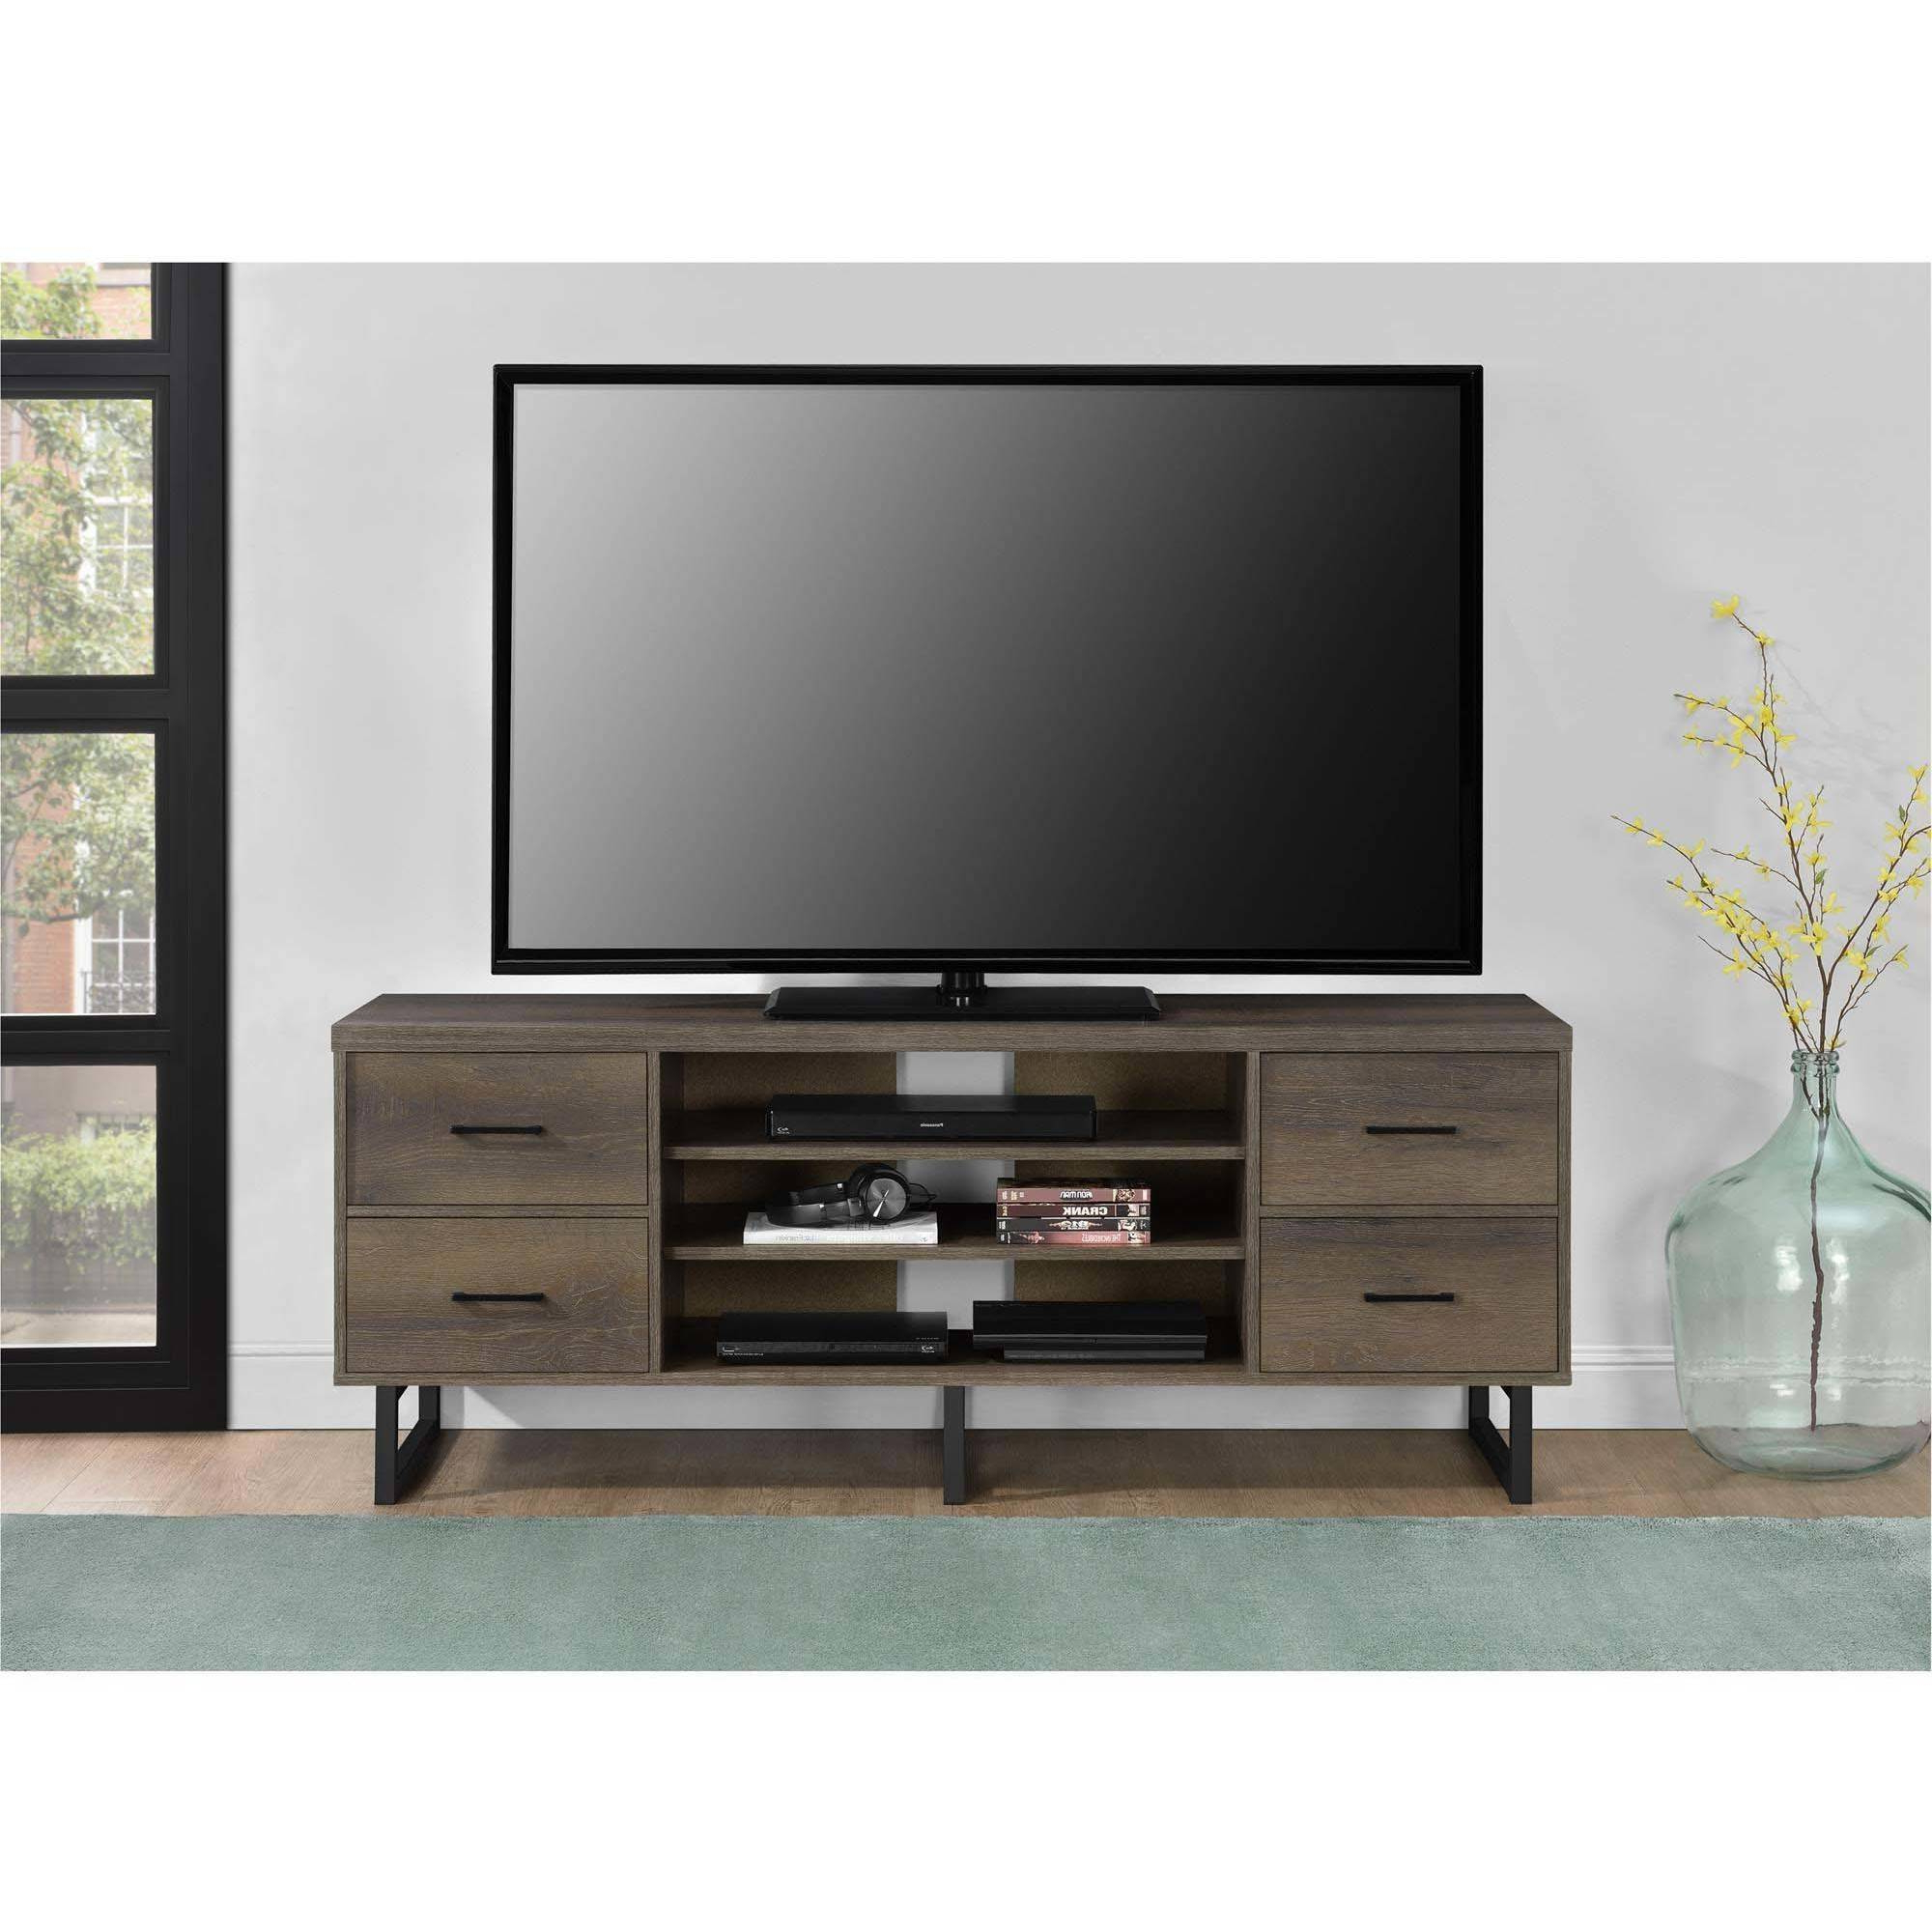 Ameriwood Home Candon Tv Stand With Bins For Tvs Up To 60 With Regard To Harbor Wide Tv Stands (View 2 of 20)